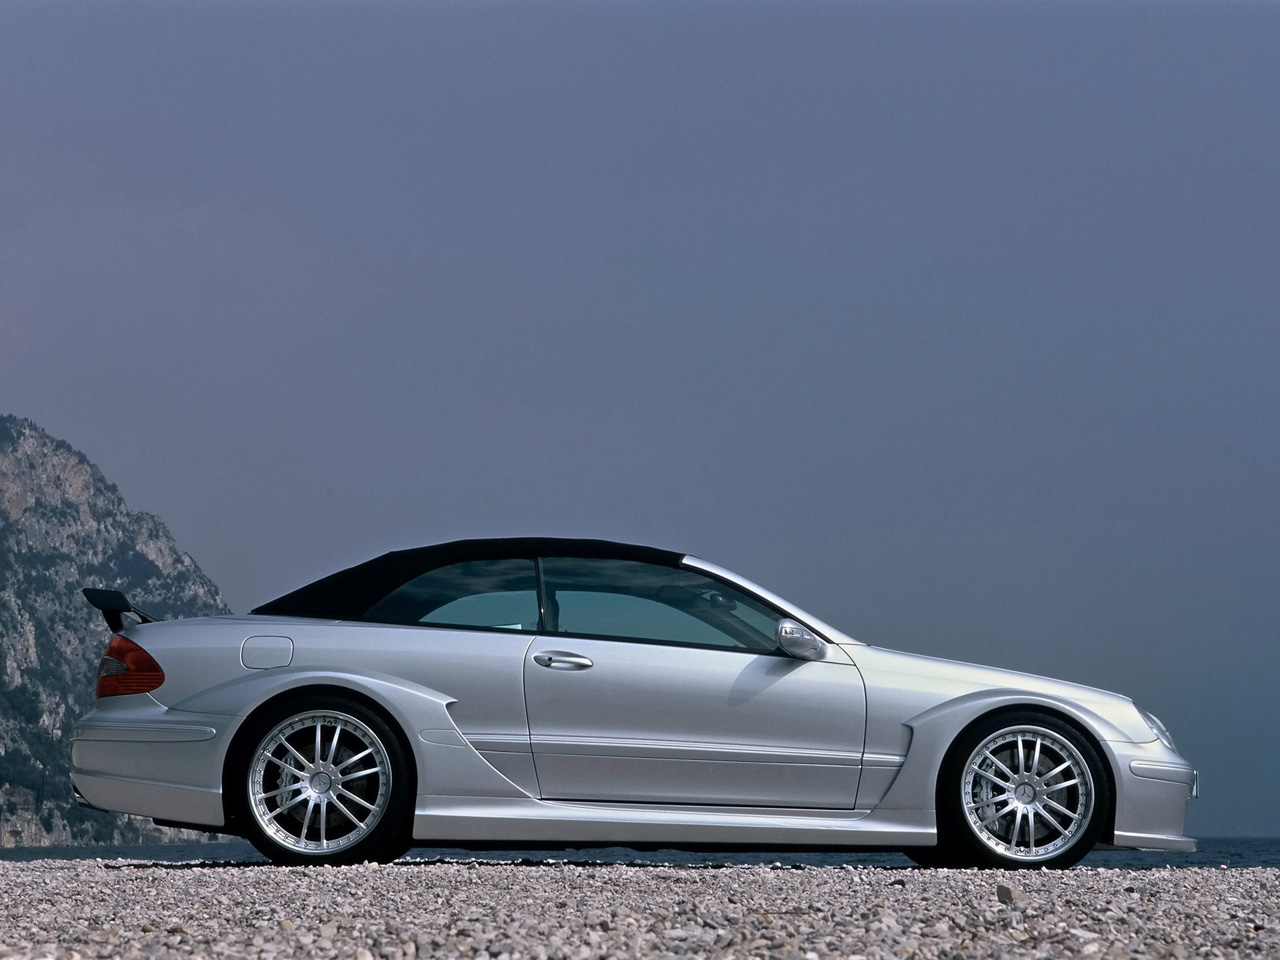 Mercedes-Benz CLK DTM AMG Cabriolet photo 04